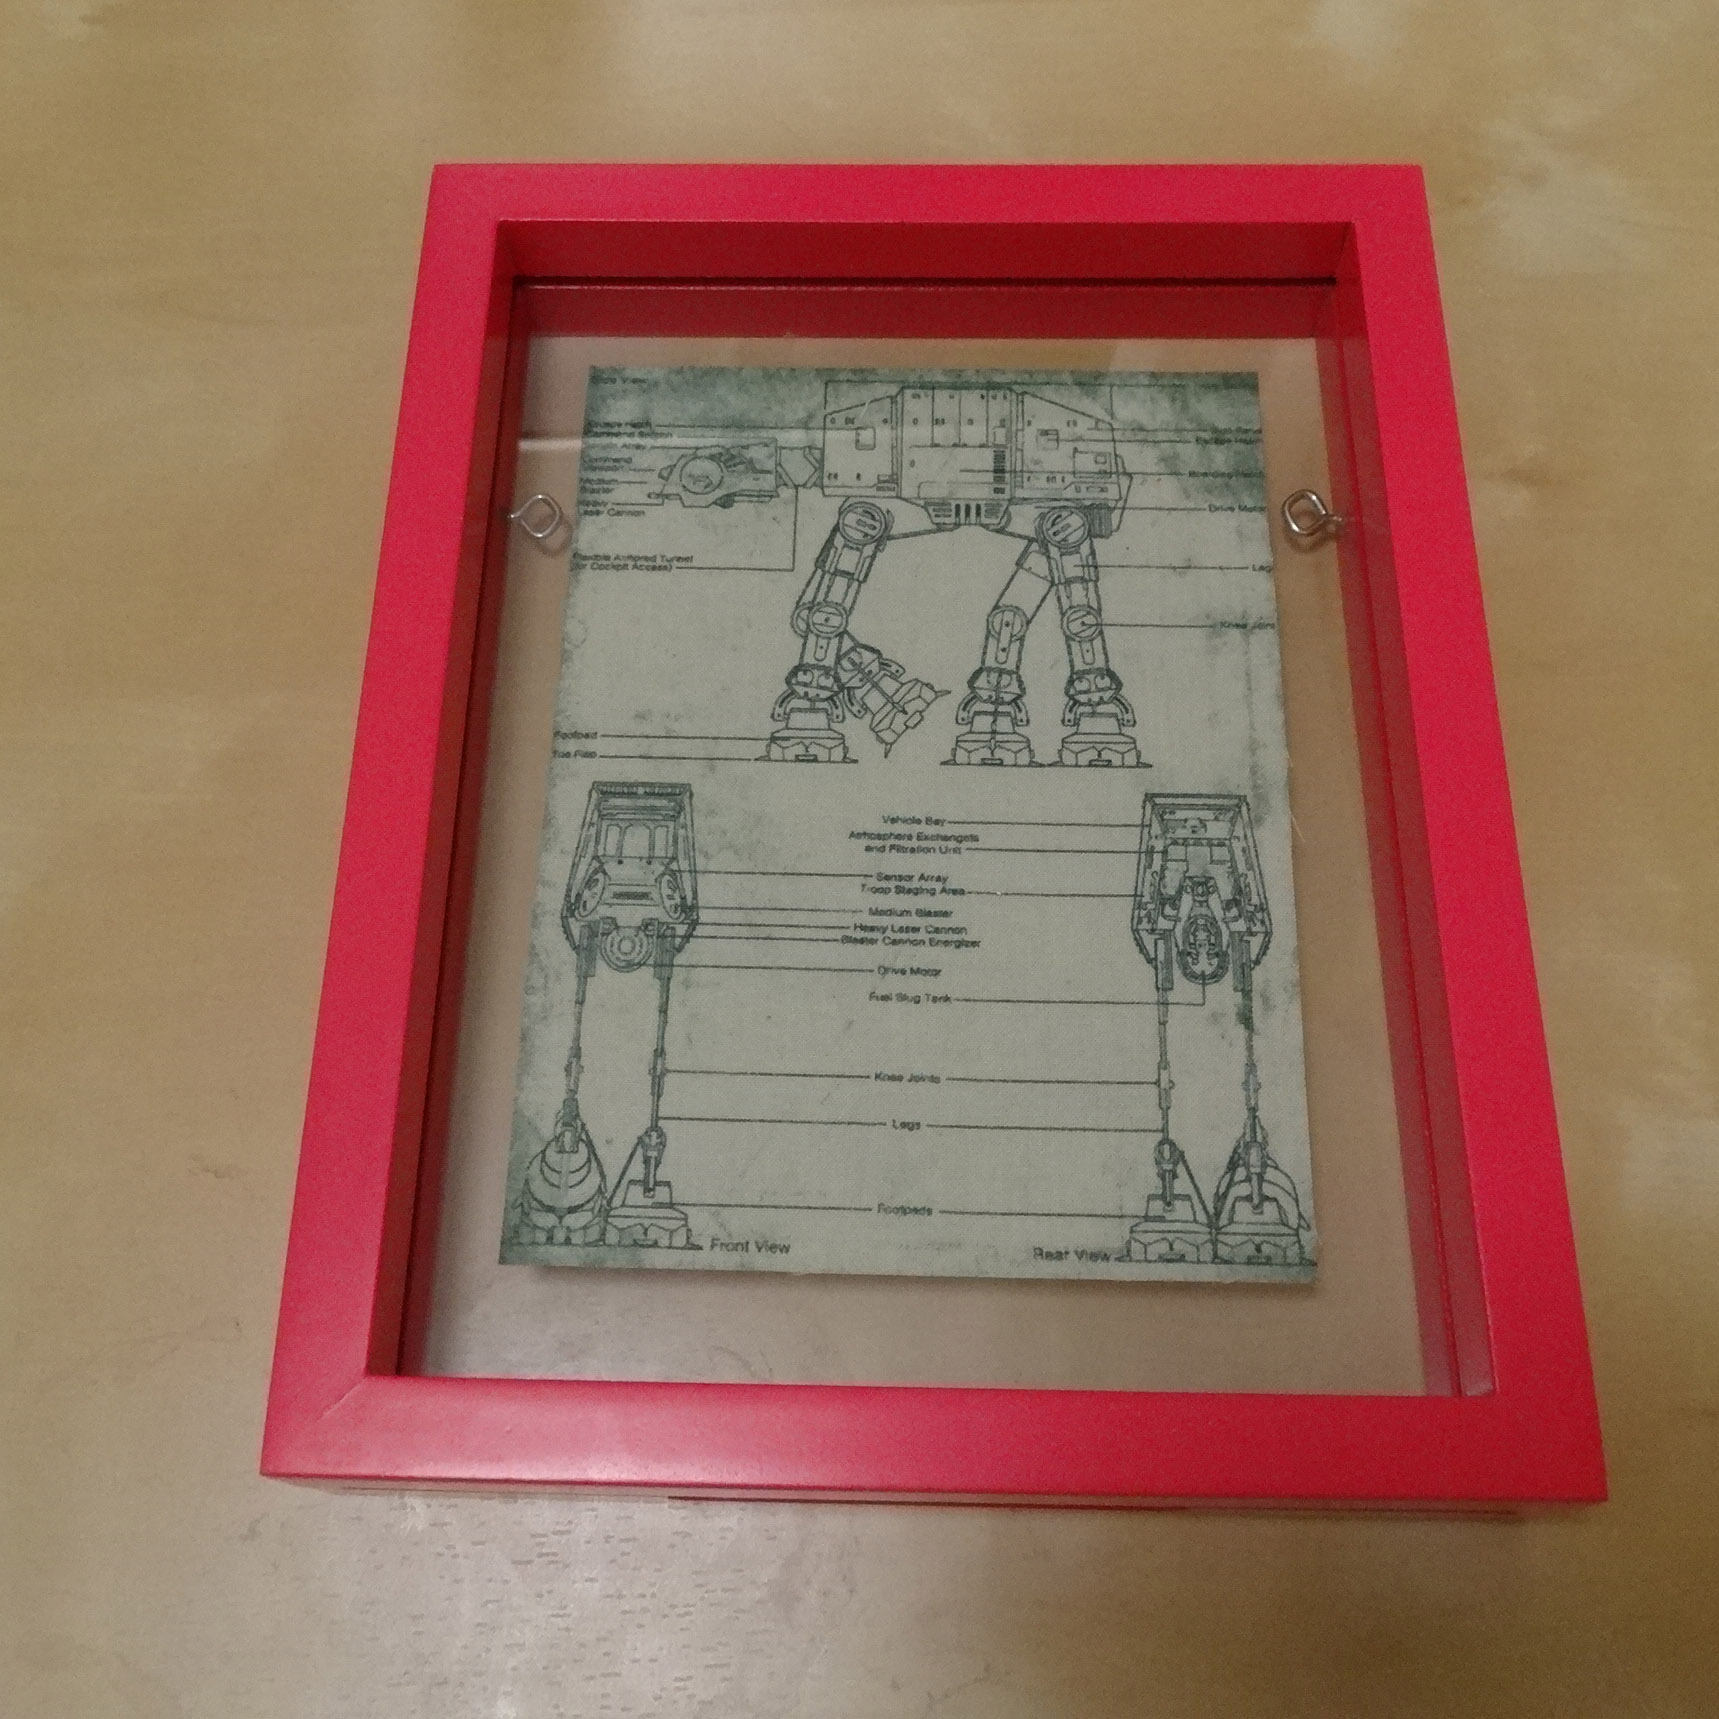 Star Wars Framed